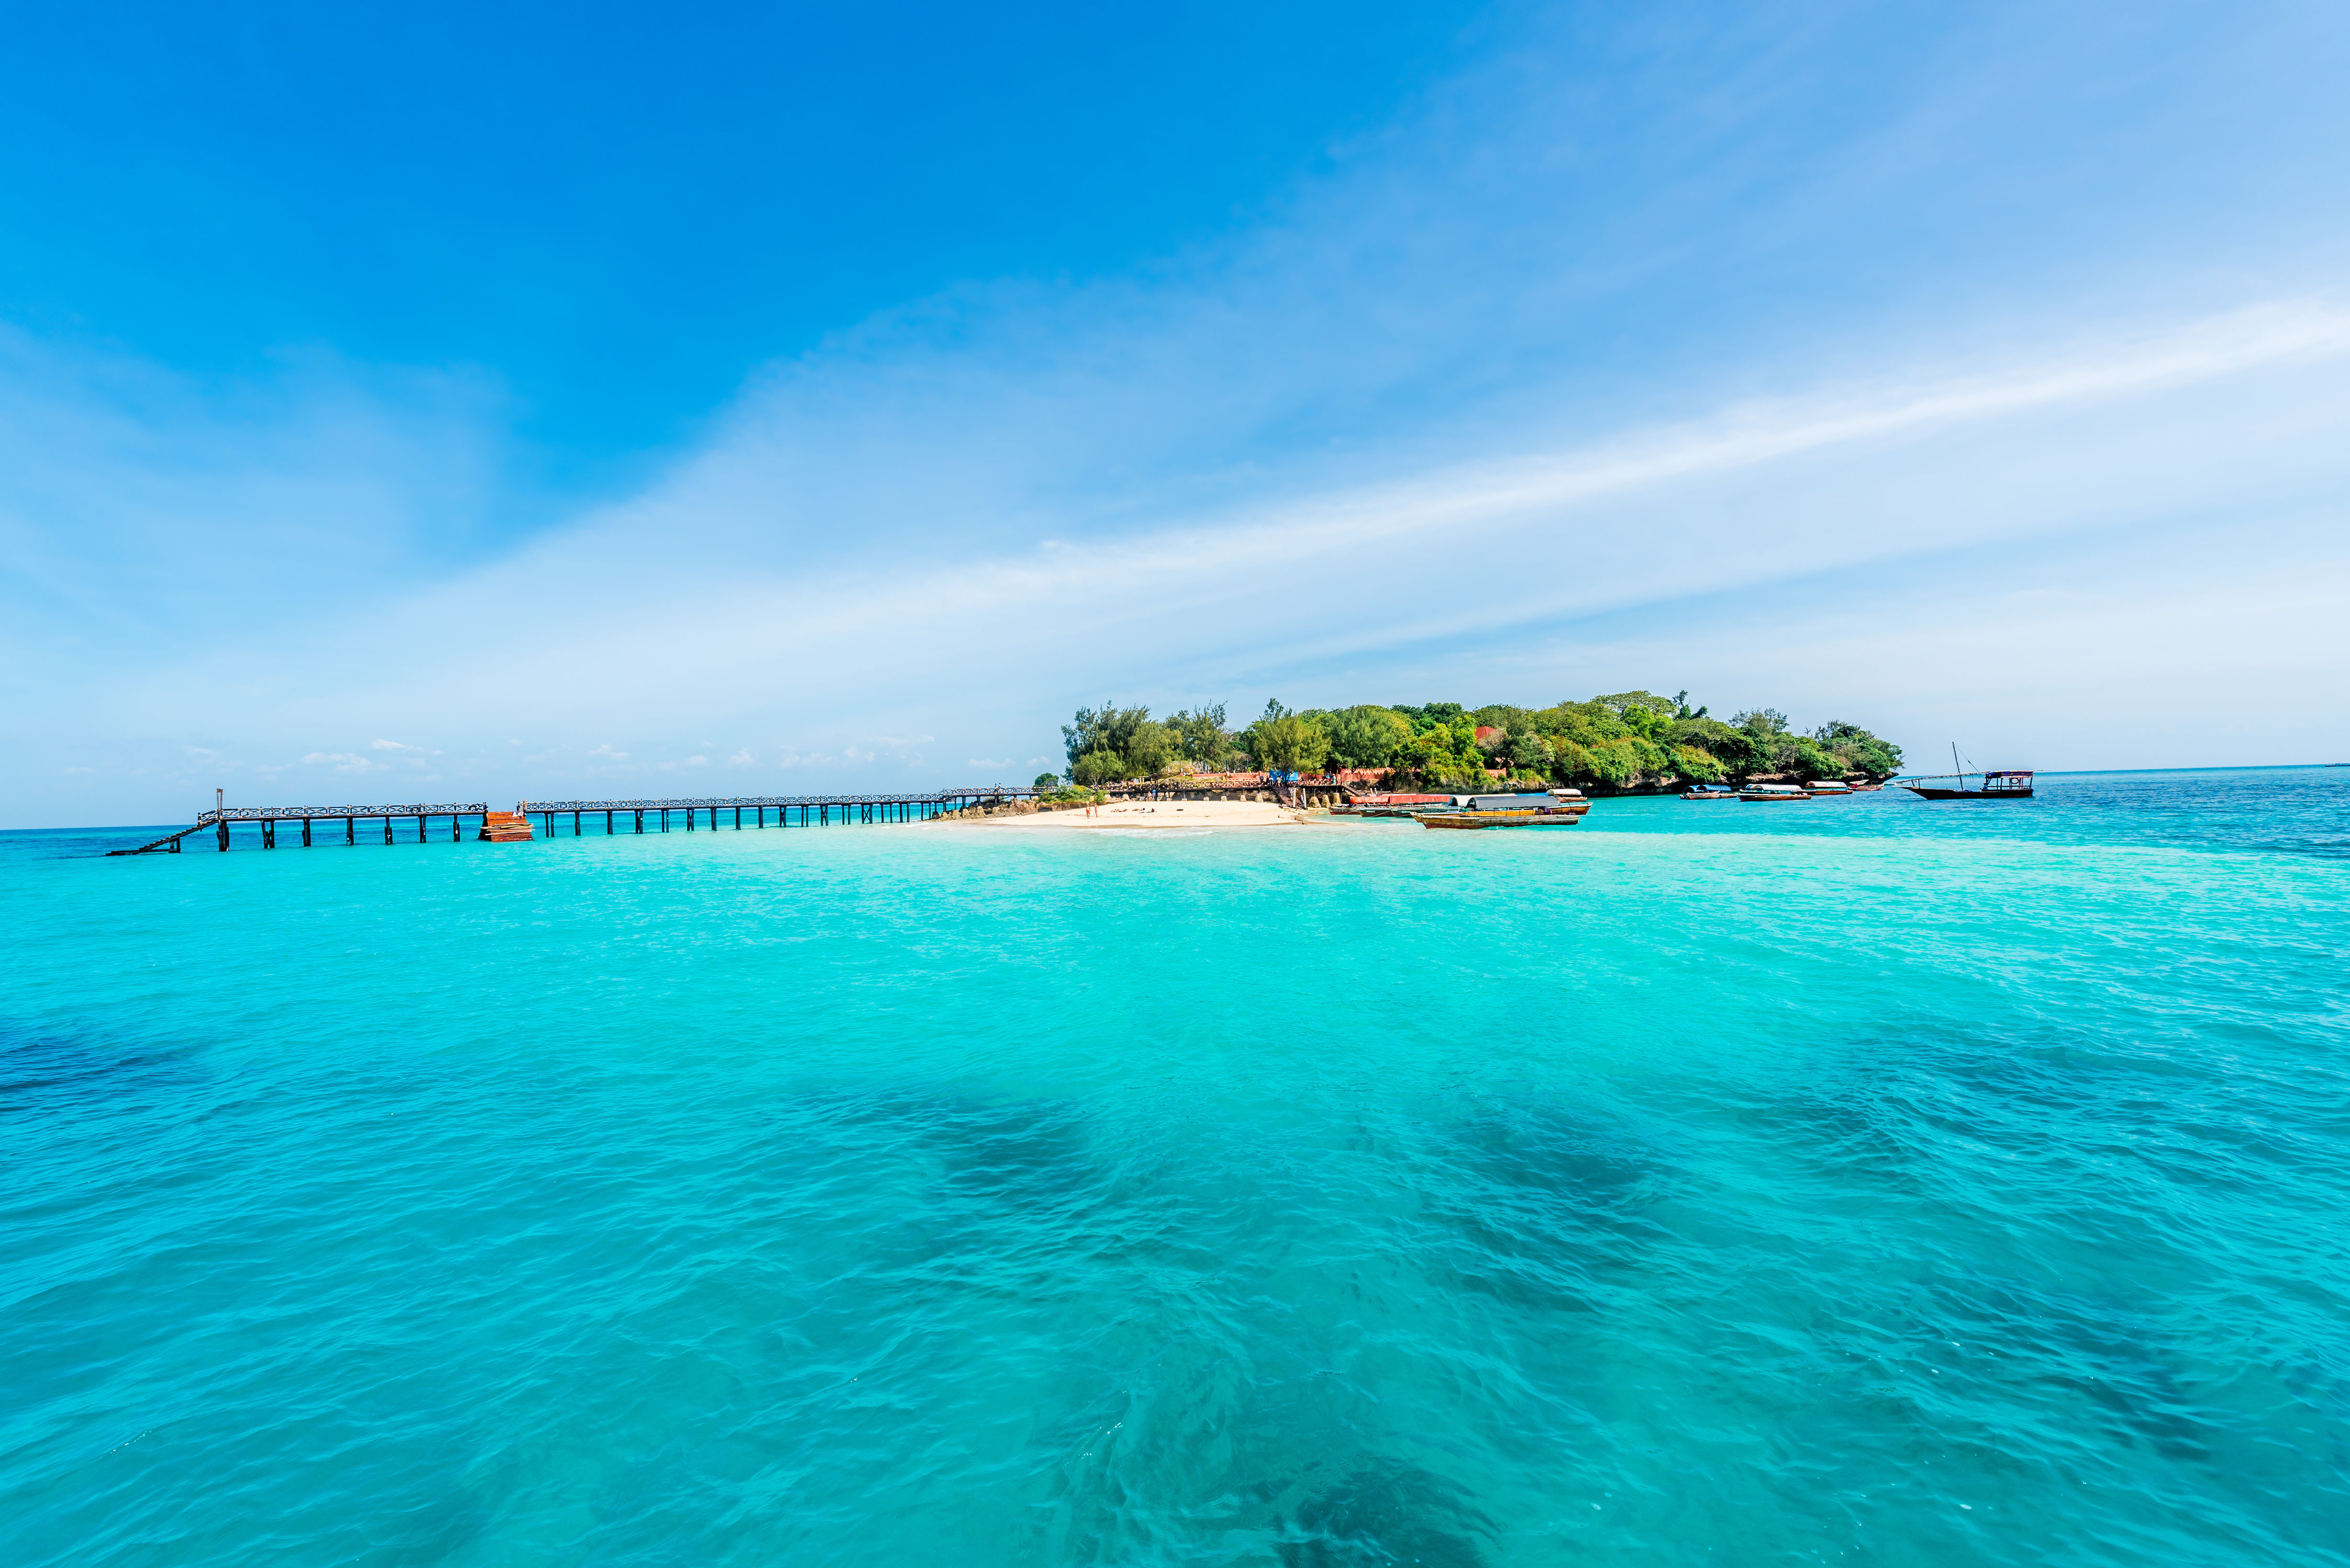 Small tropical island with wooden jetty, surrounded by turquoise waters and clear blue skies off Madagascar.